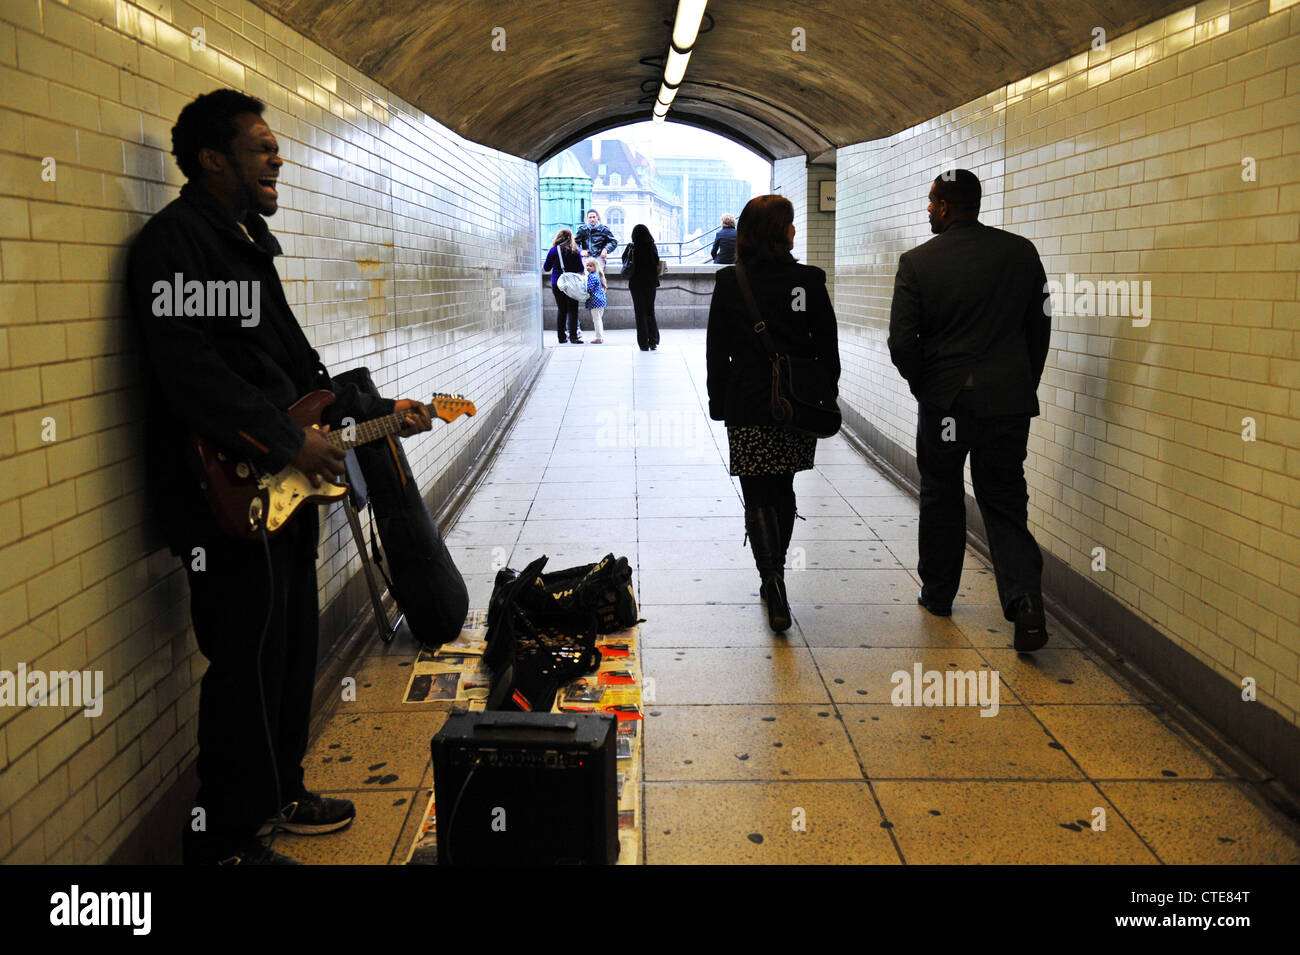 A Busker performs in a London subway - Stock Image